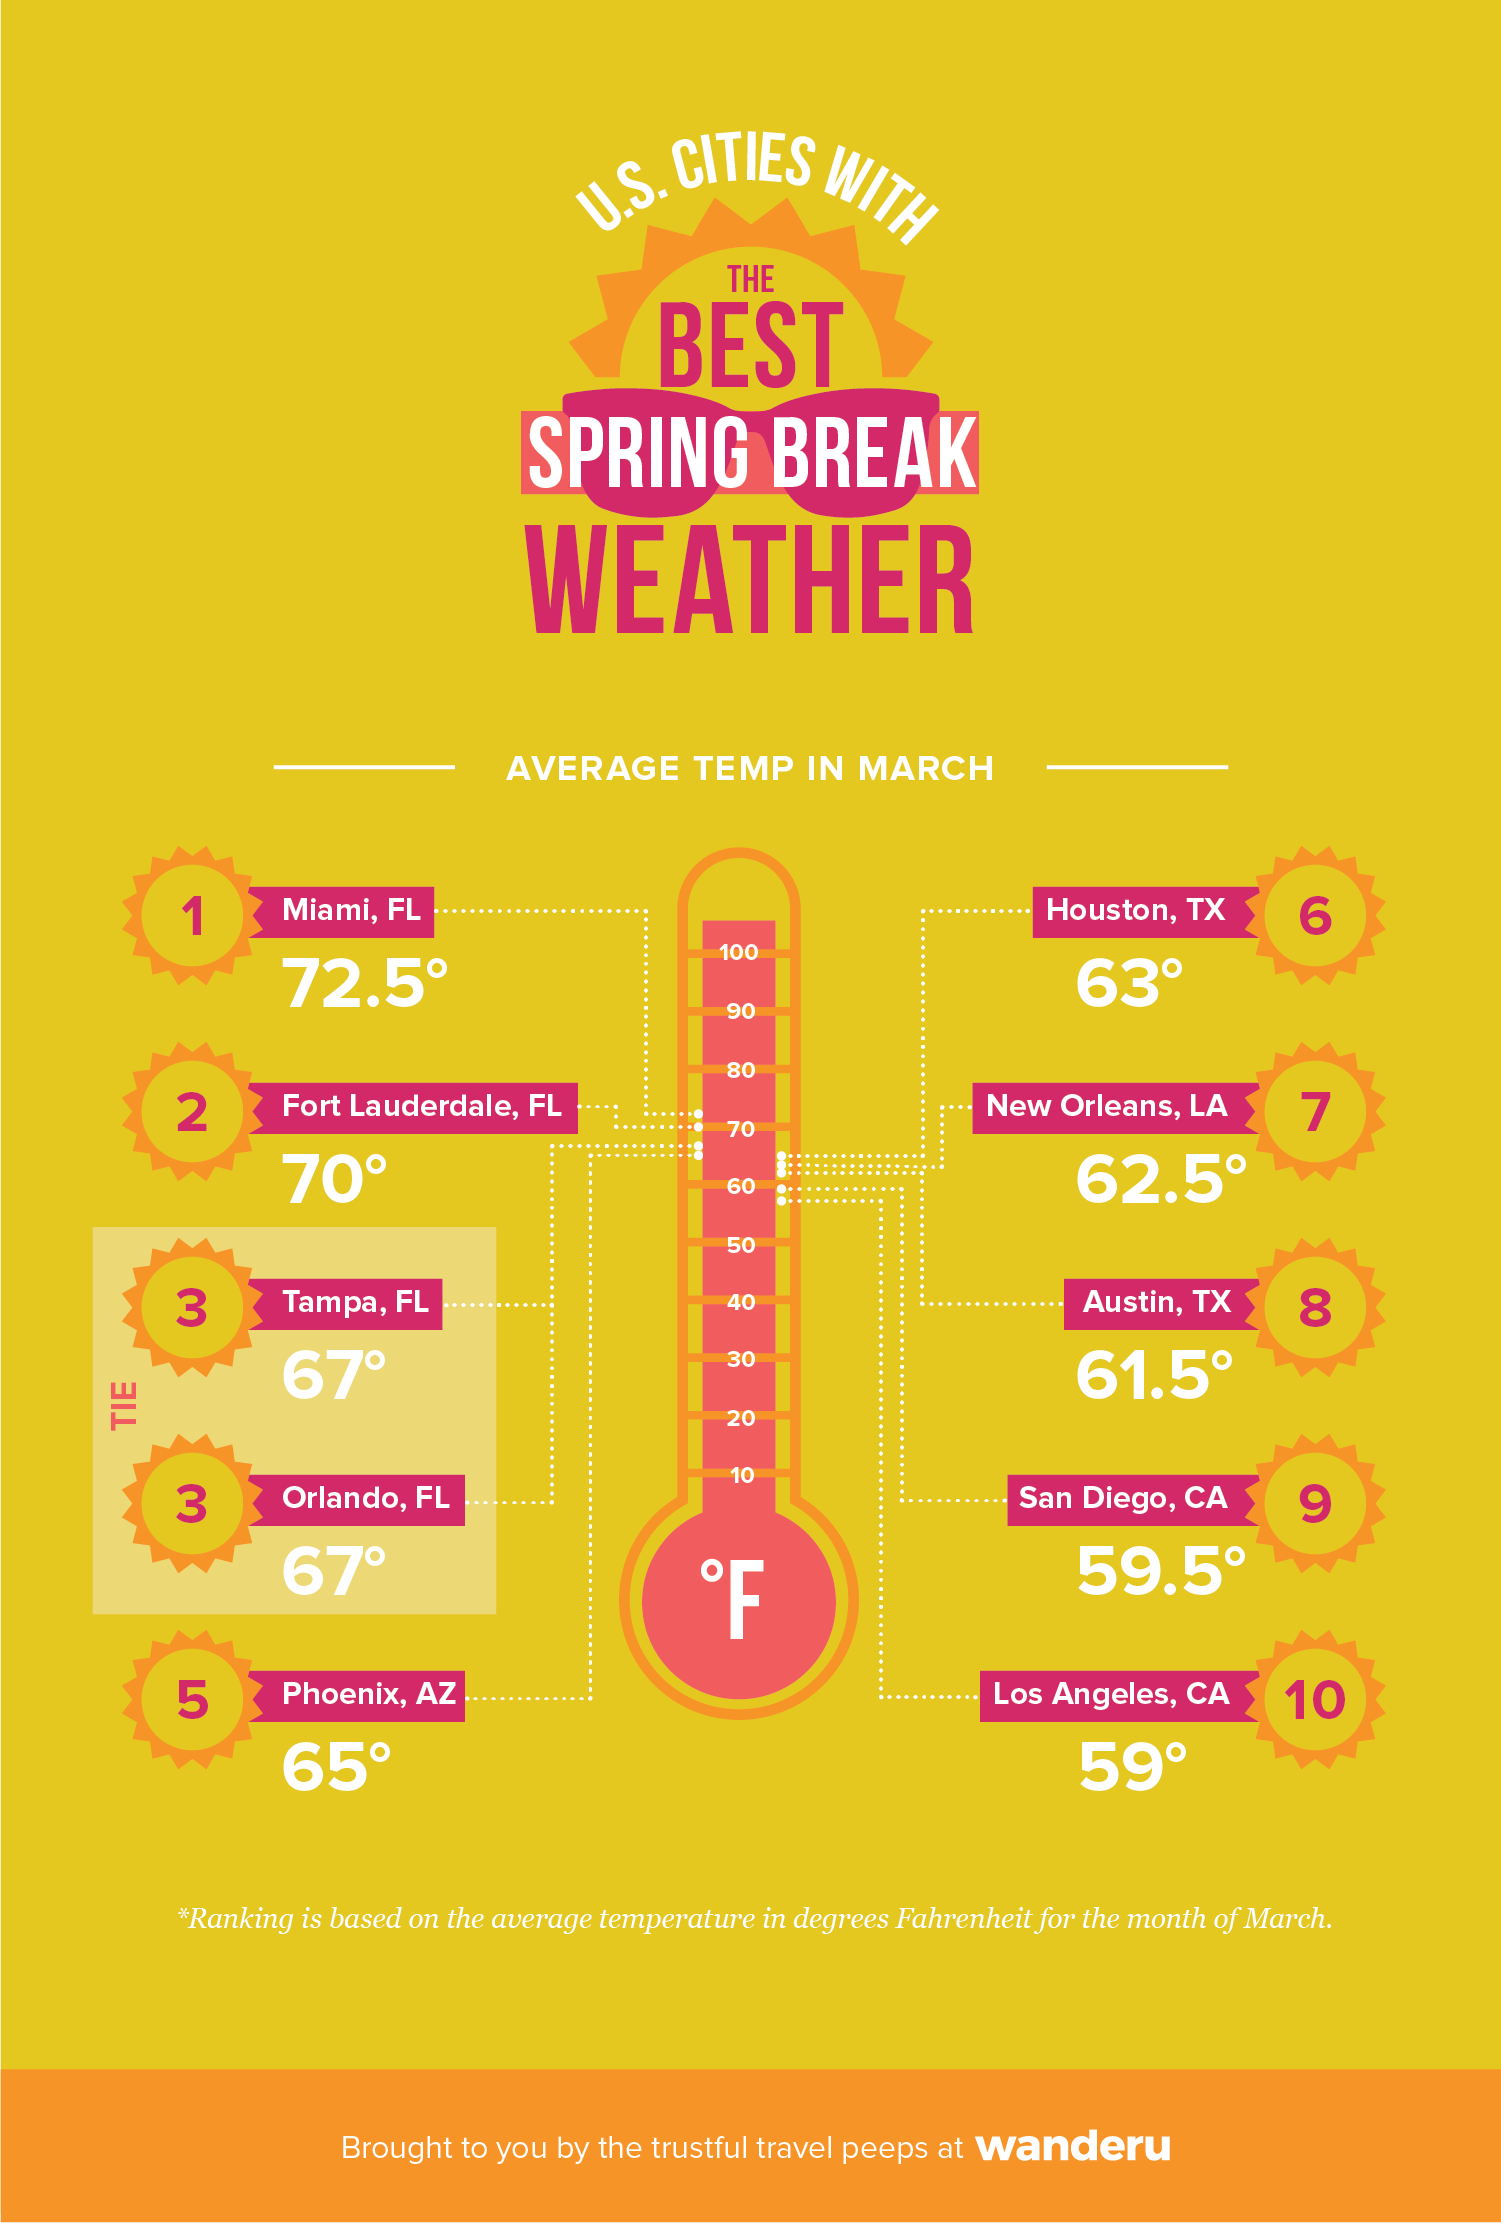 Infographic showing the top 10 spring break destinations with the warmest average temperature in March.